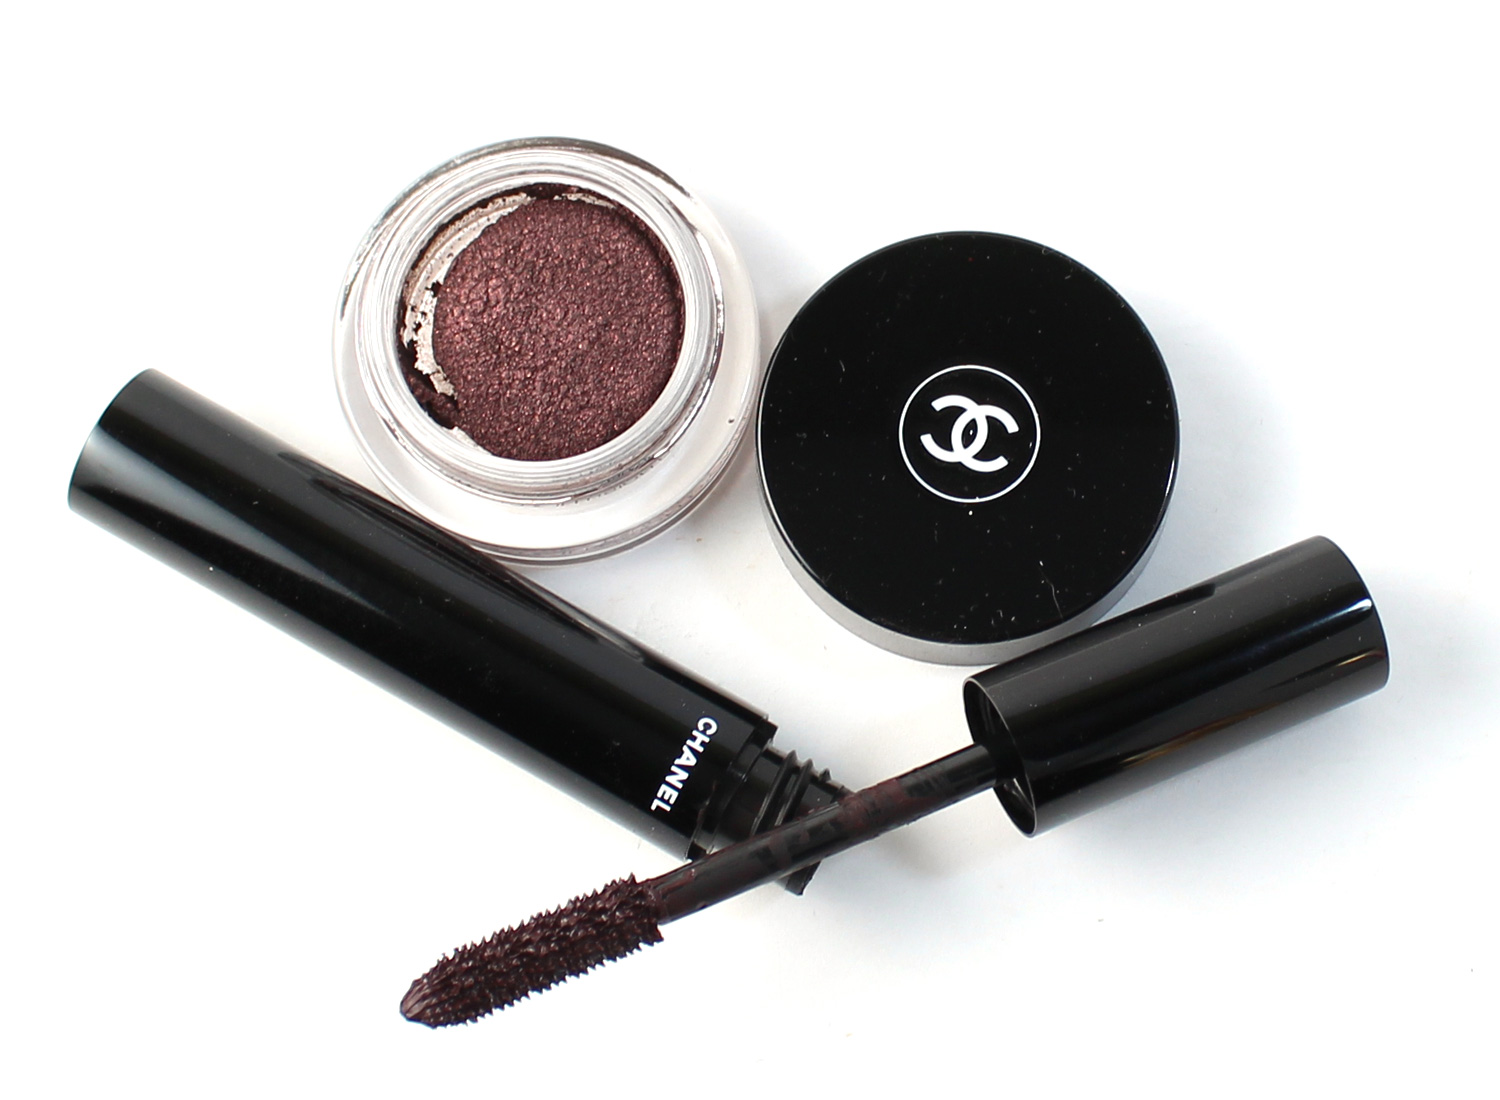 D'Ombre Long Wear Luminous Eyeshadow & Le Volume de Chanel